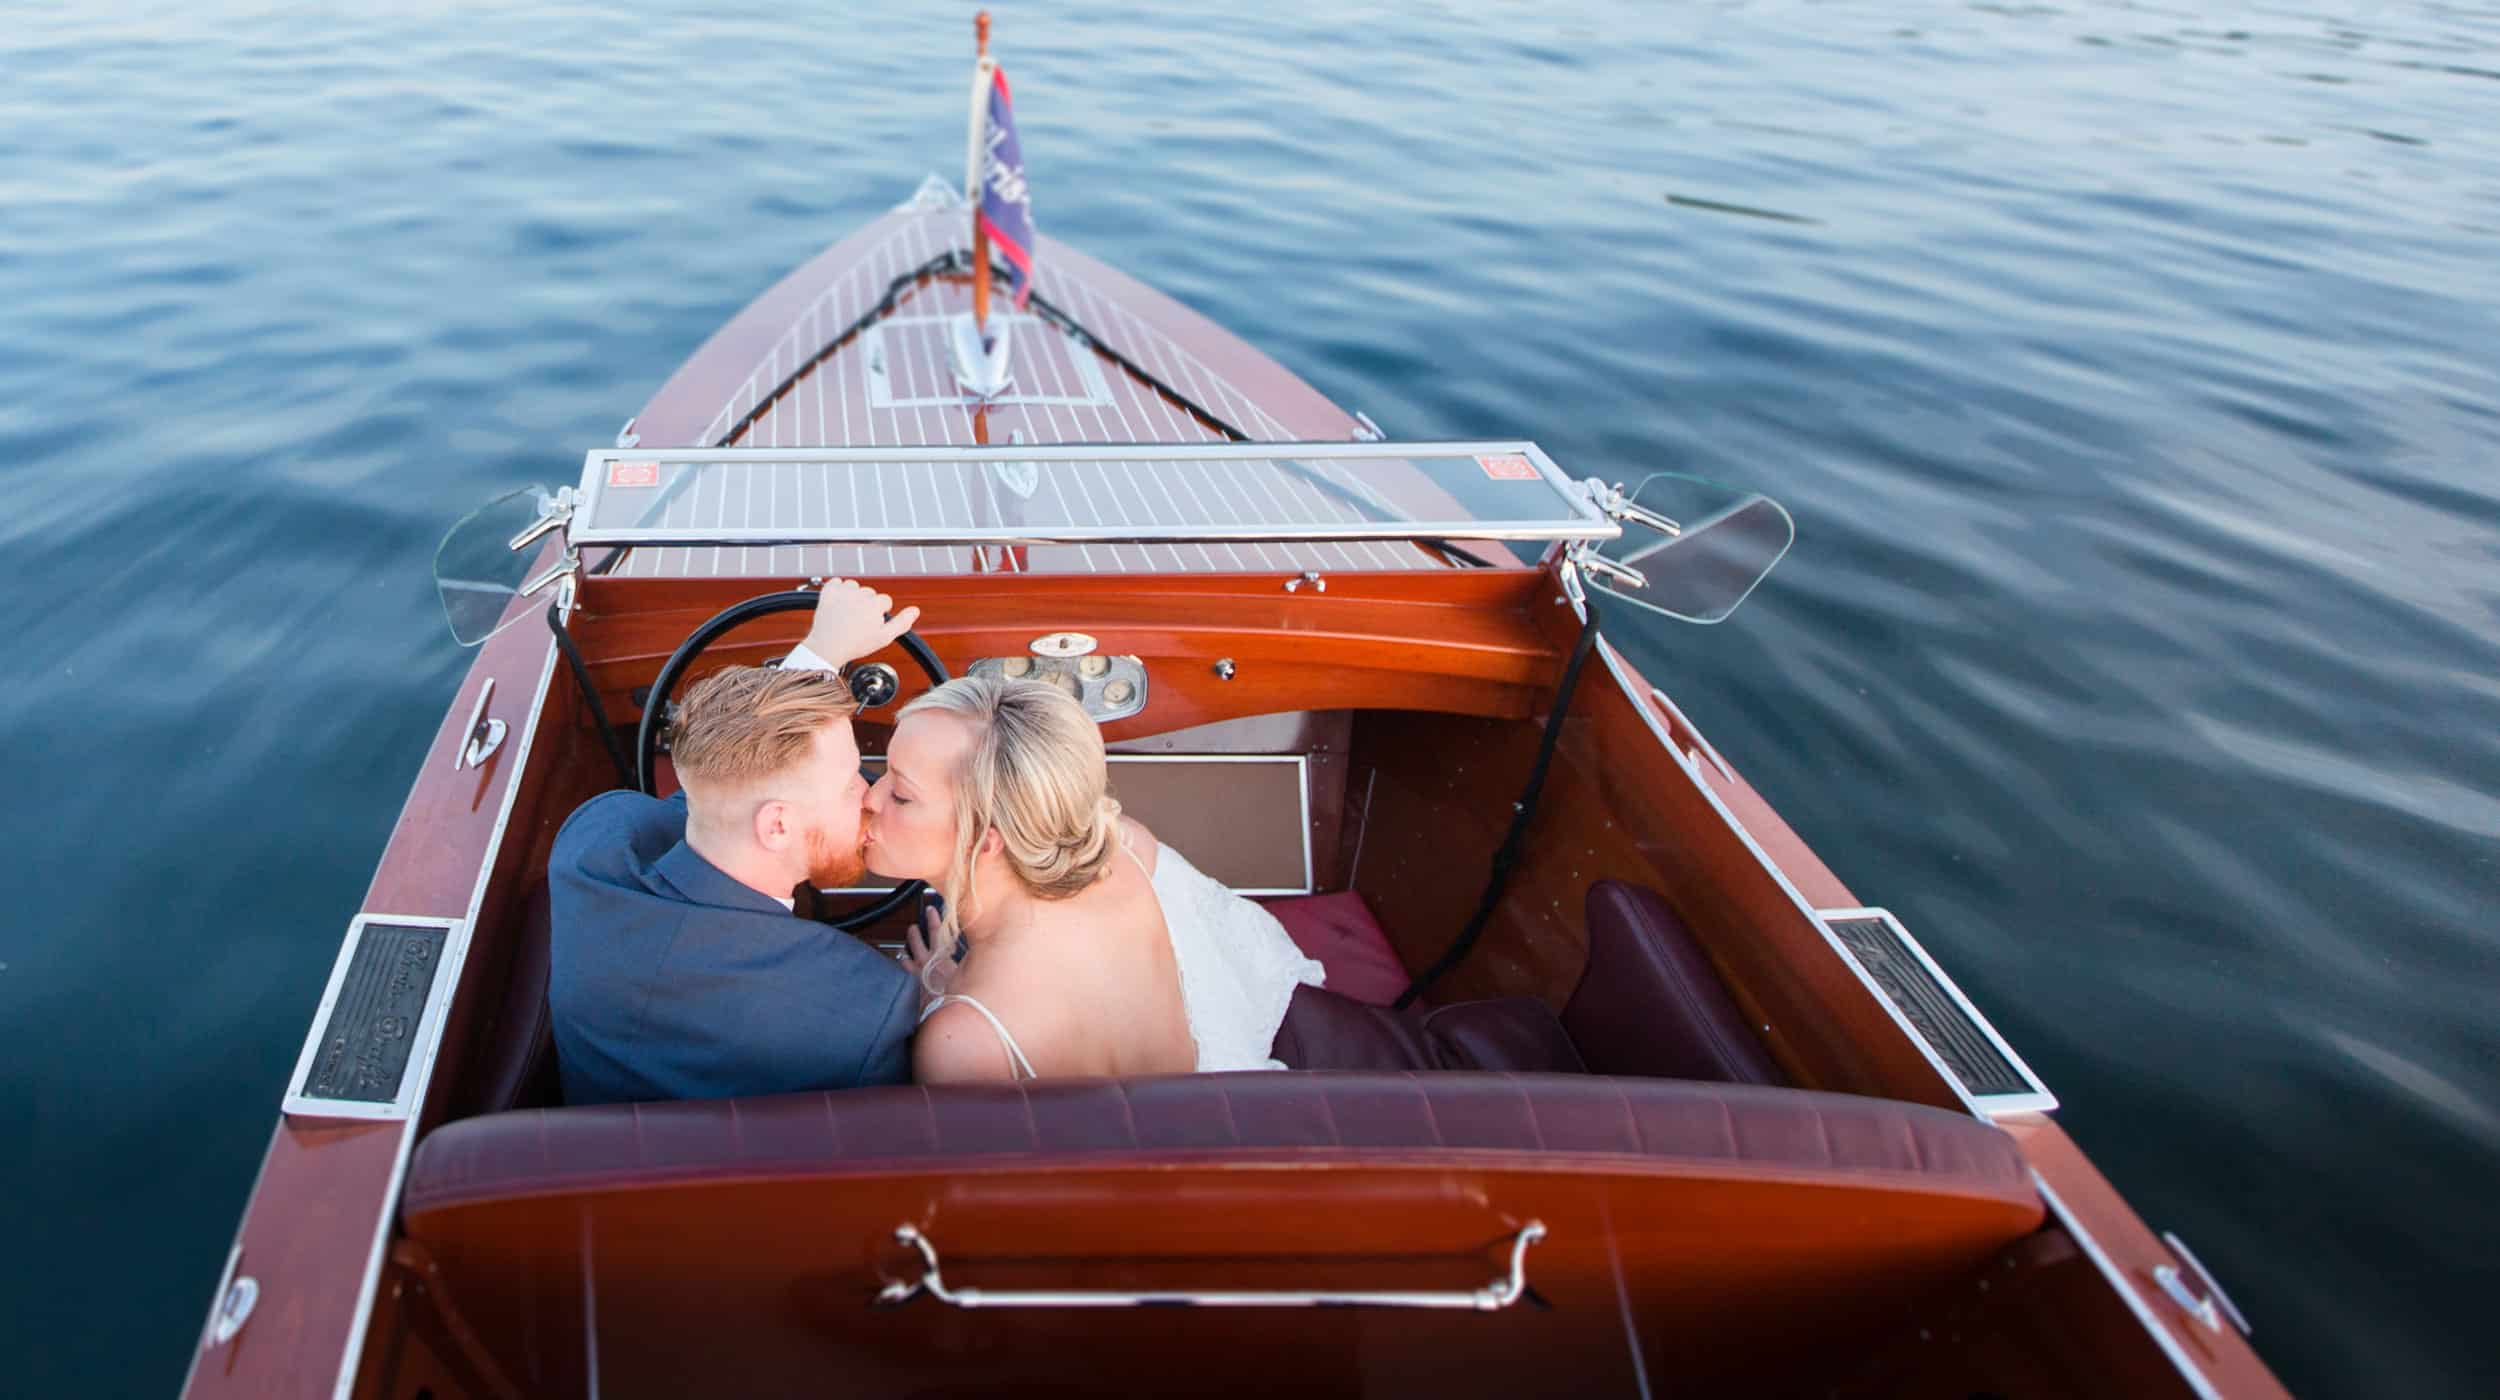 Wedding Portrait in Boat of Husband and Wife Edited by Photographer's Edit. Outsourcing editing has taken the weight off for post production.